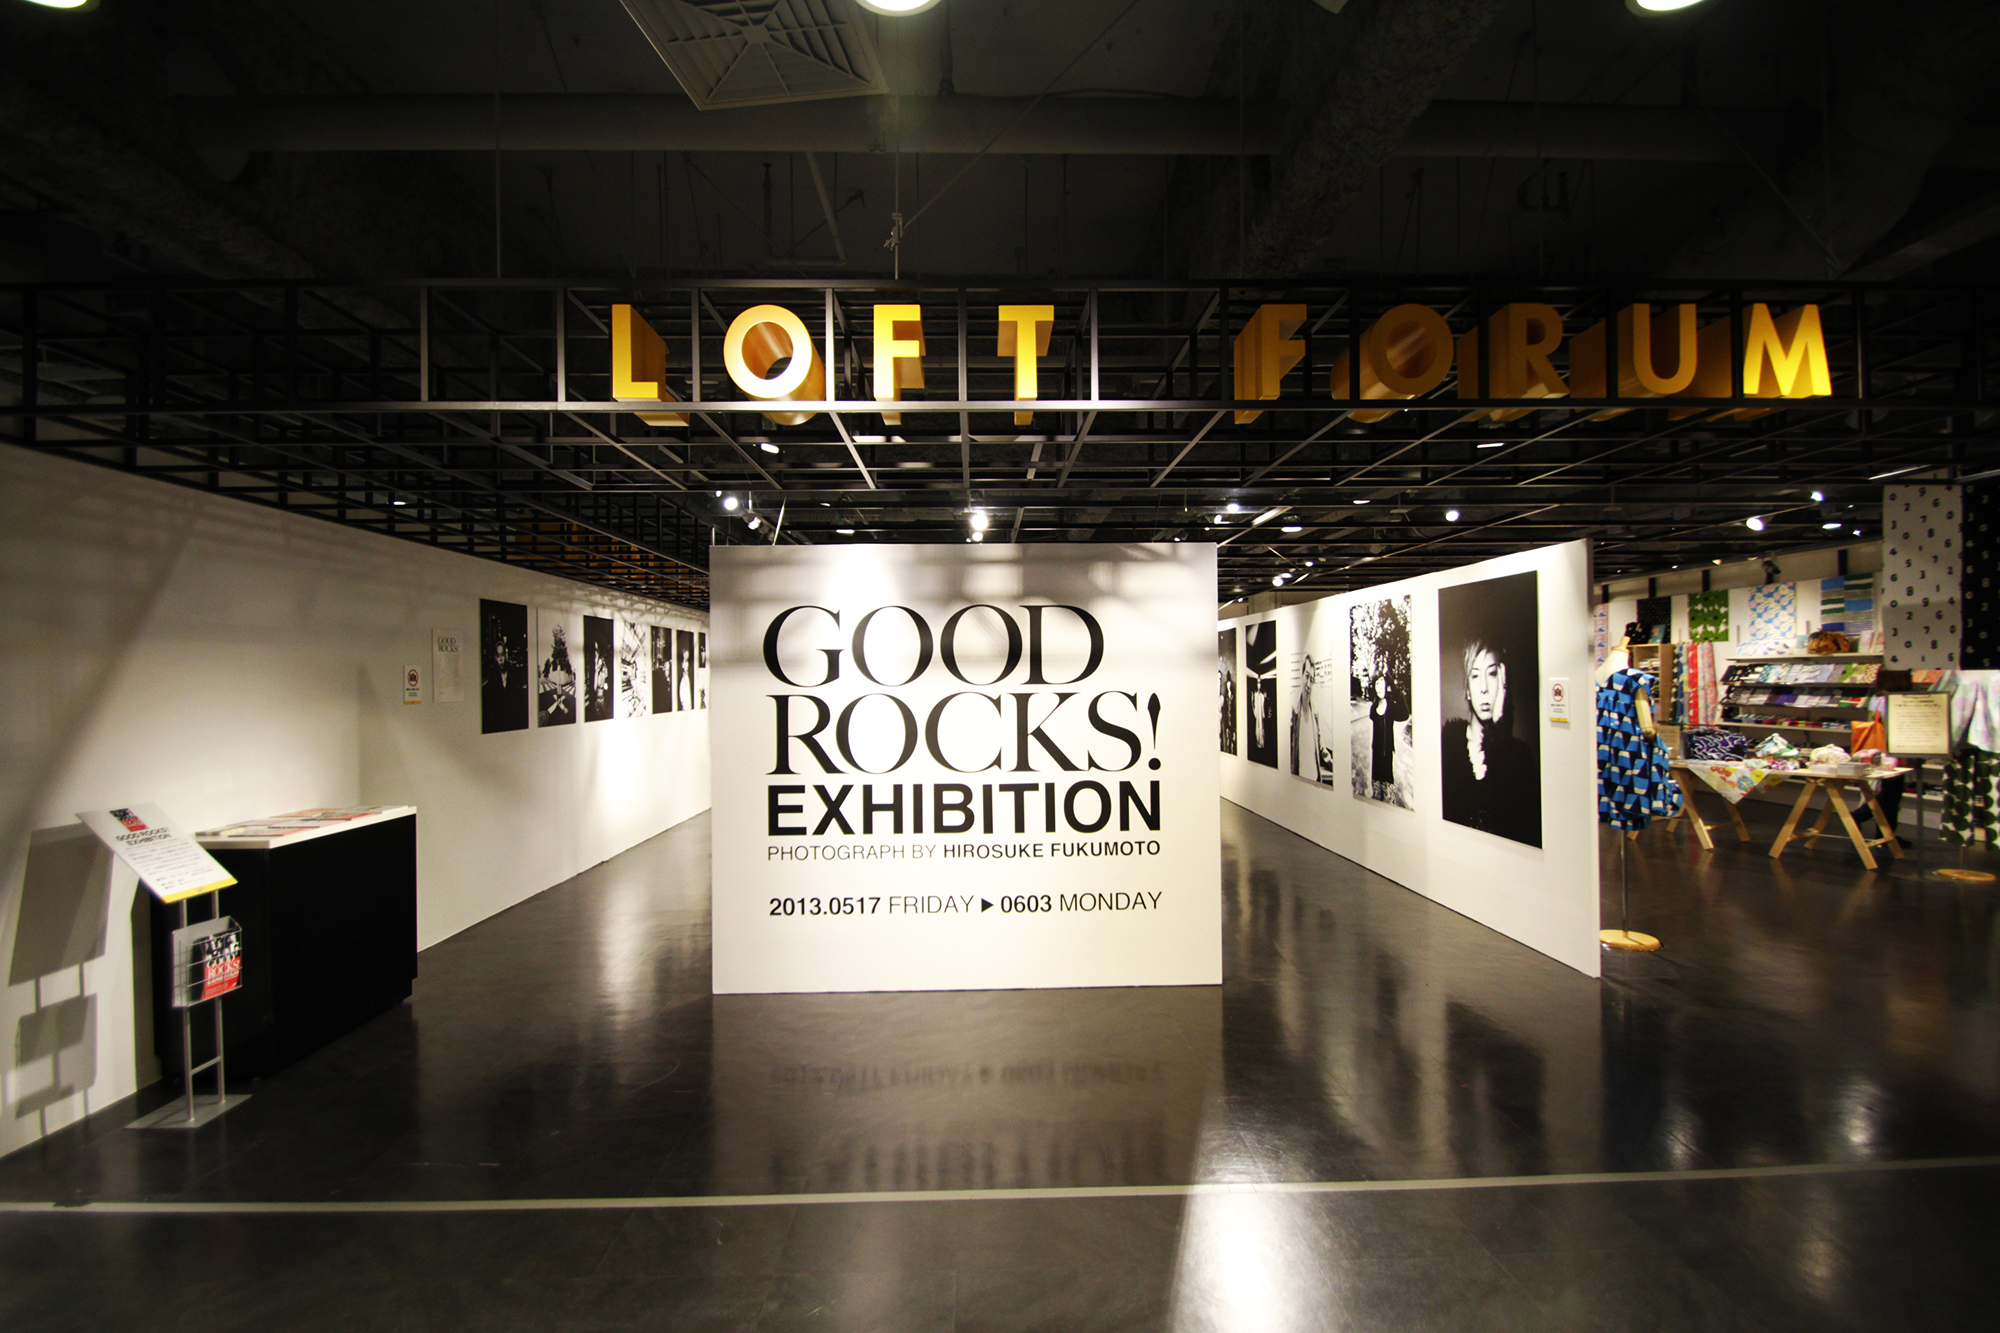 【大阪】GOOD ROCKS! PHOTO EXHIBITION  PHOTOGRAPHED BY HIROSUKE FUKUMOTO IN OSAKA